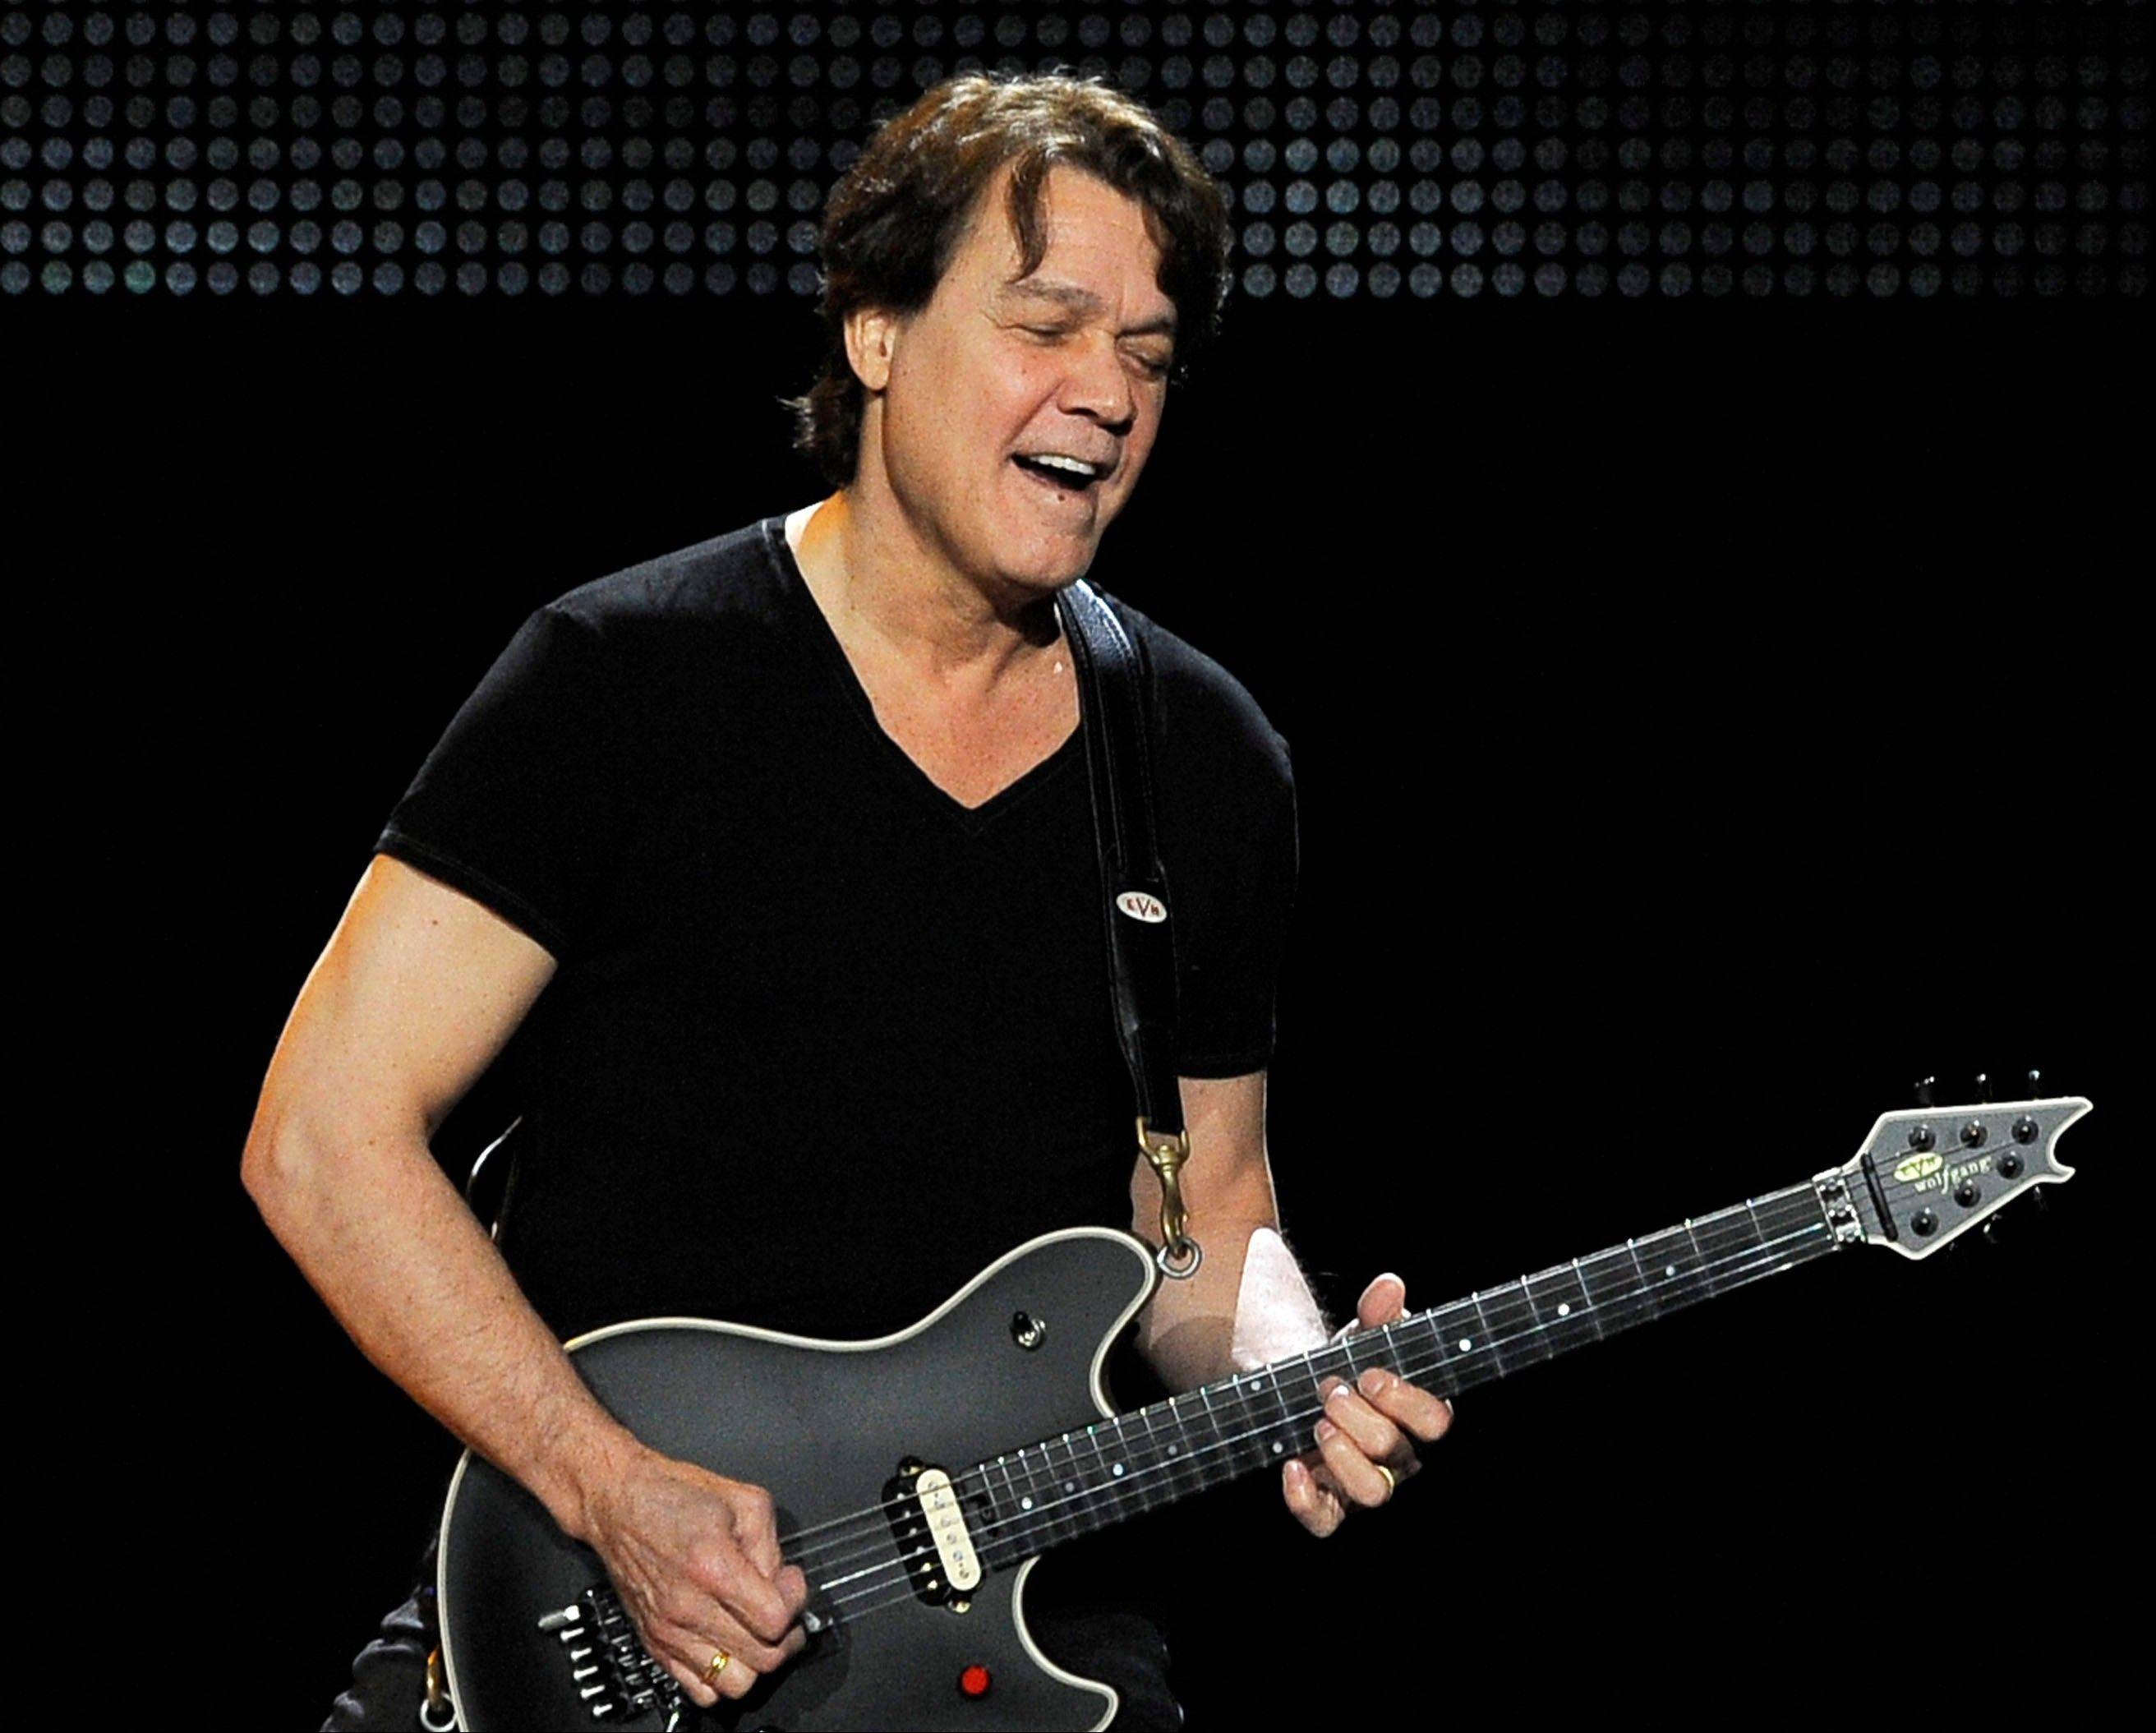 Eddie Van Halen underwent an emergency surgery for the digestive disease diverticulitis and is canceling his tour in Japan to recover.